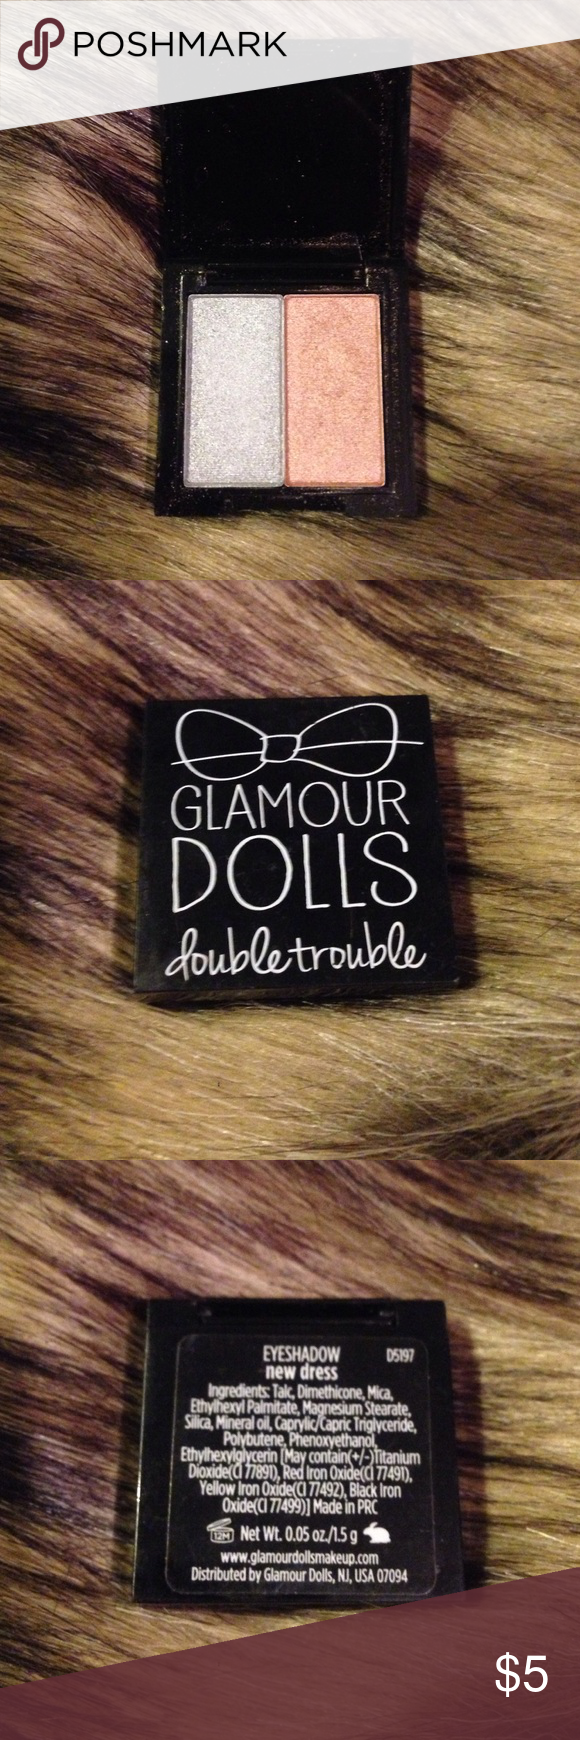 Glamour dolls double trouble eyeshadow! Two tacos.  Two cats.  Two glasses of wine. Two is obviously better than one. This Glamour dolls double trouble eyeshadow in new dress is the perfect combination to any amazing look! 😏 Makeup Eyeshadow